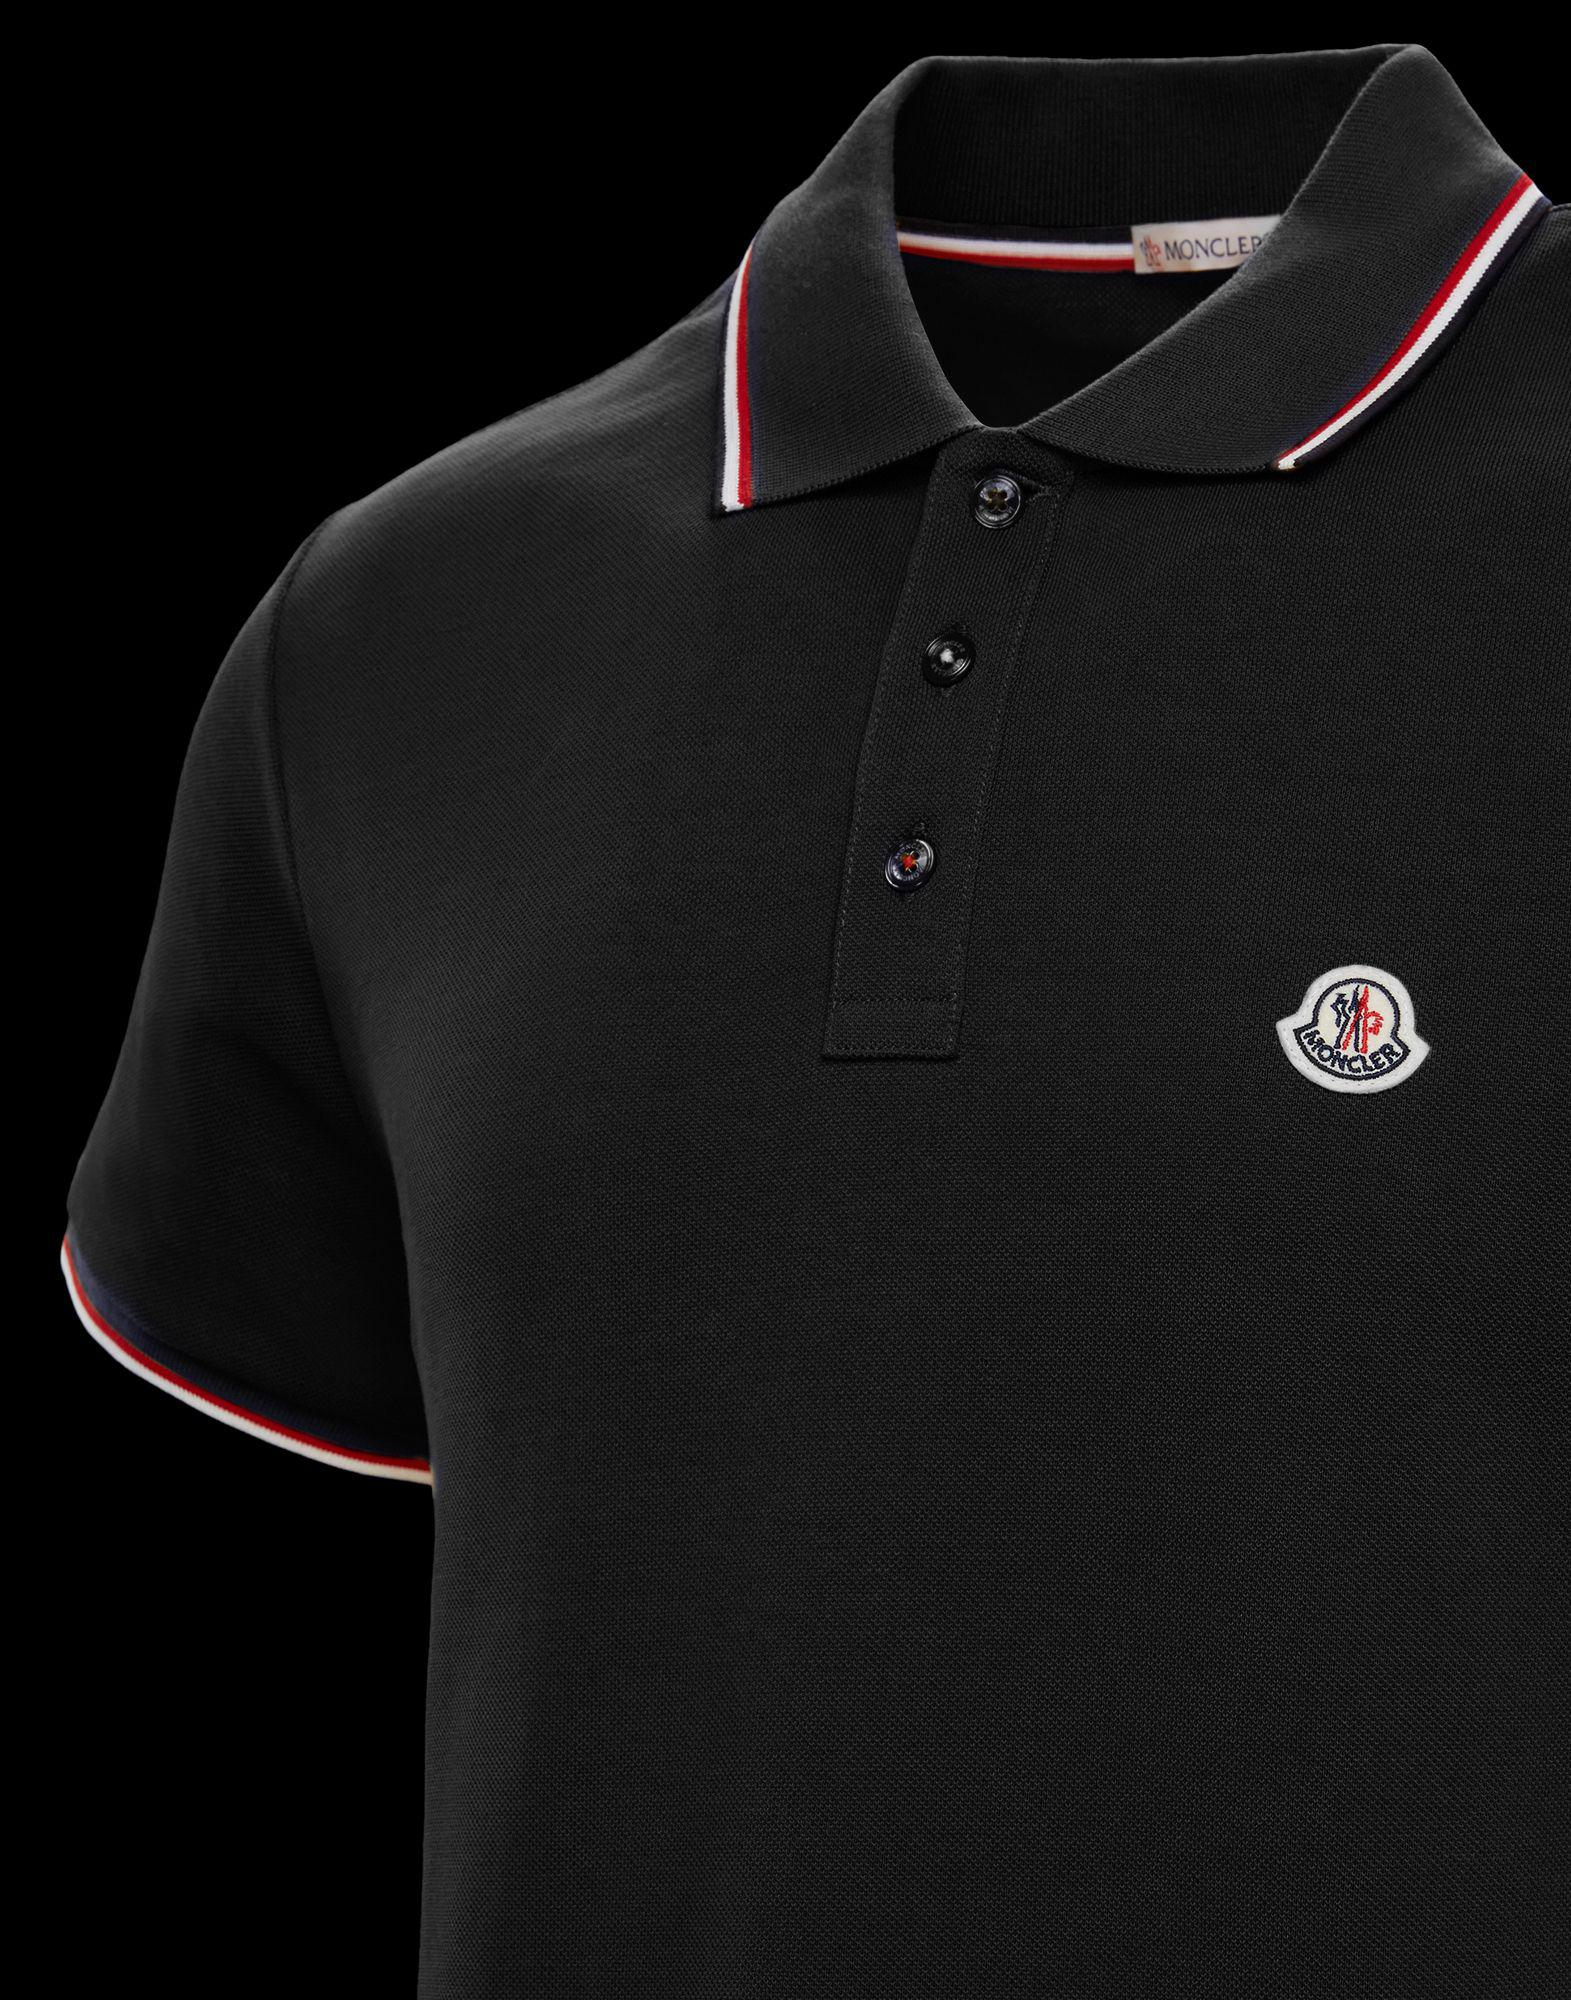 a291e09a3bfb Lyst - Moncler Polo Shirt in Black for Men